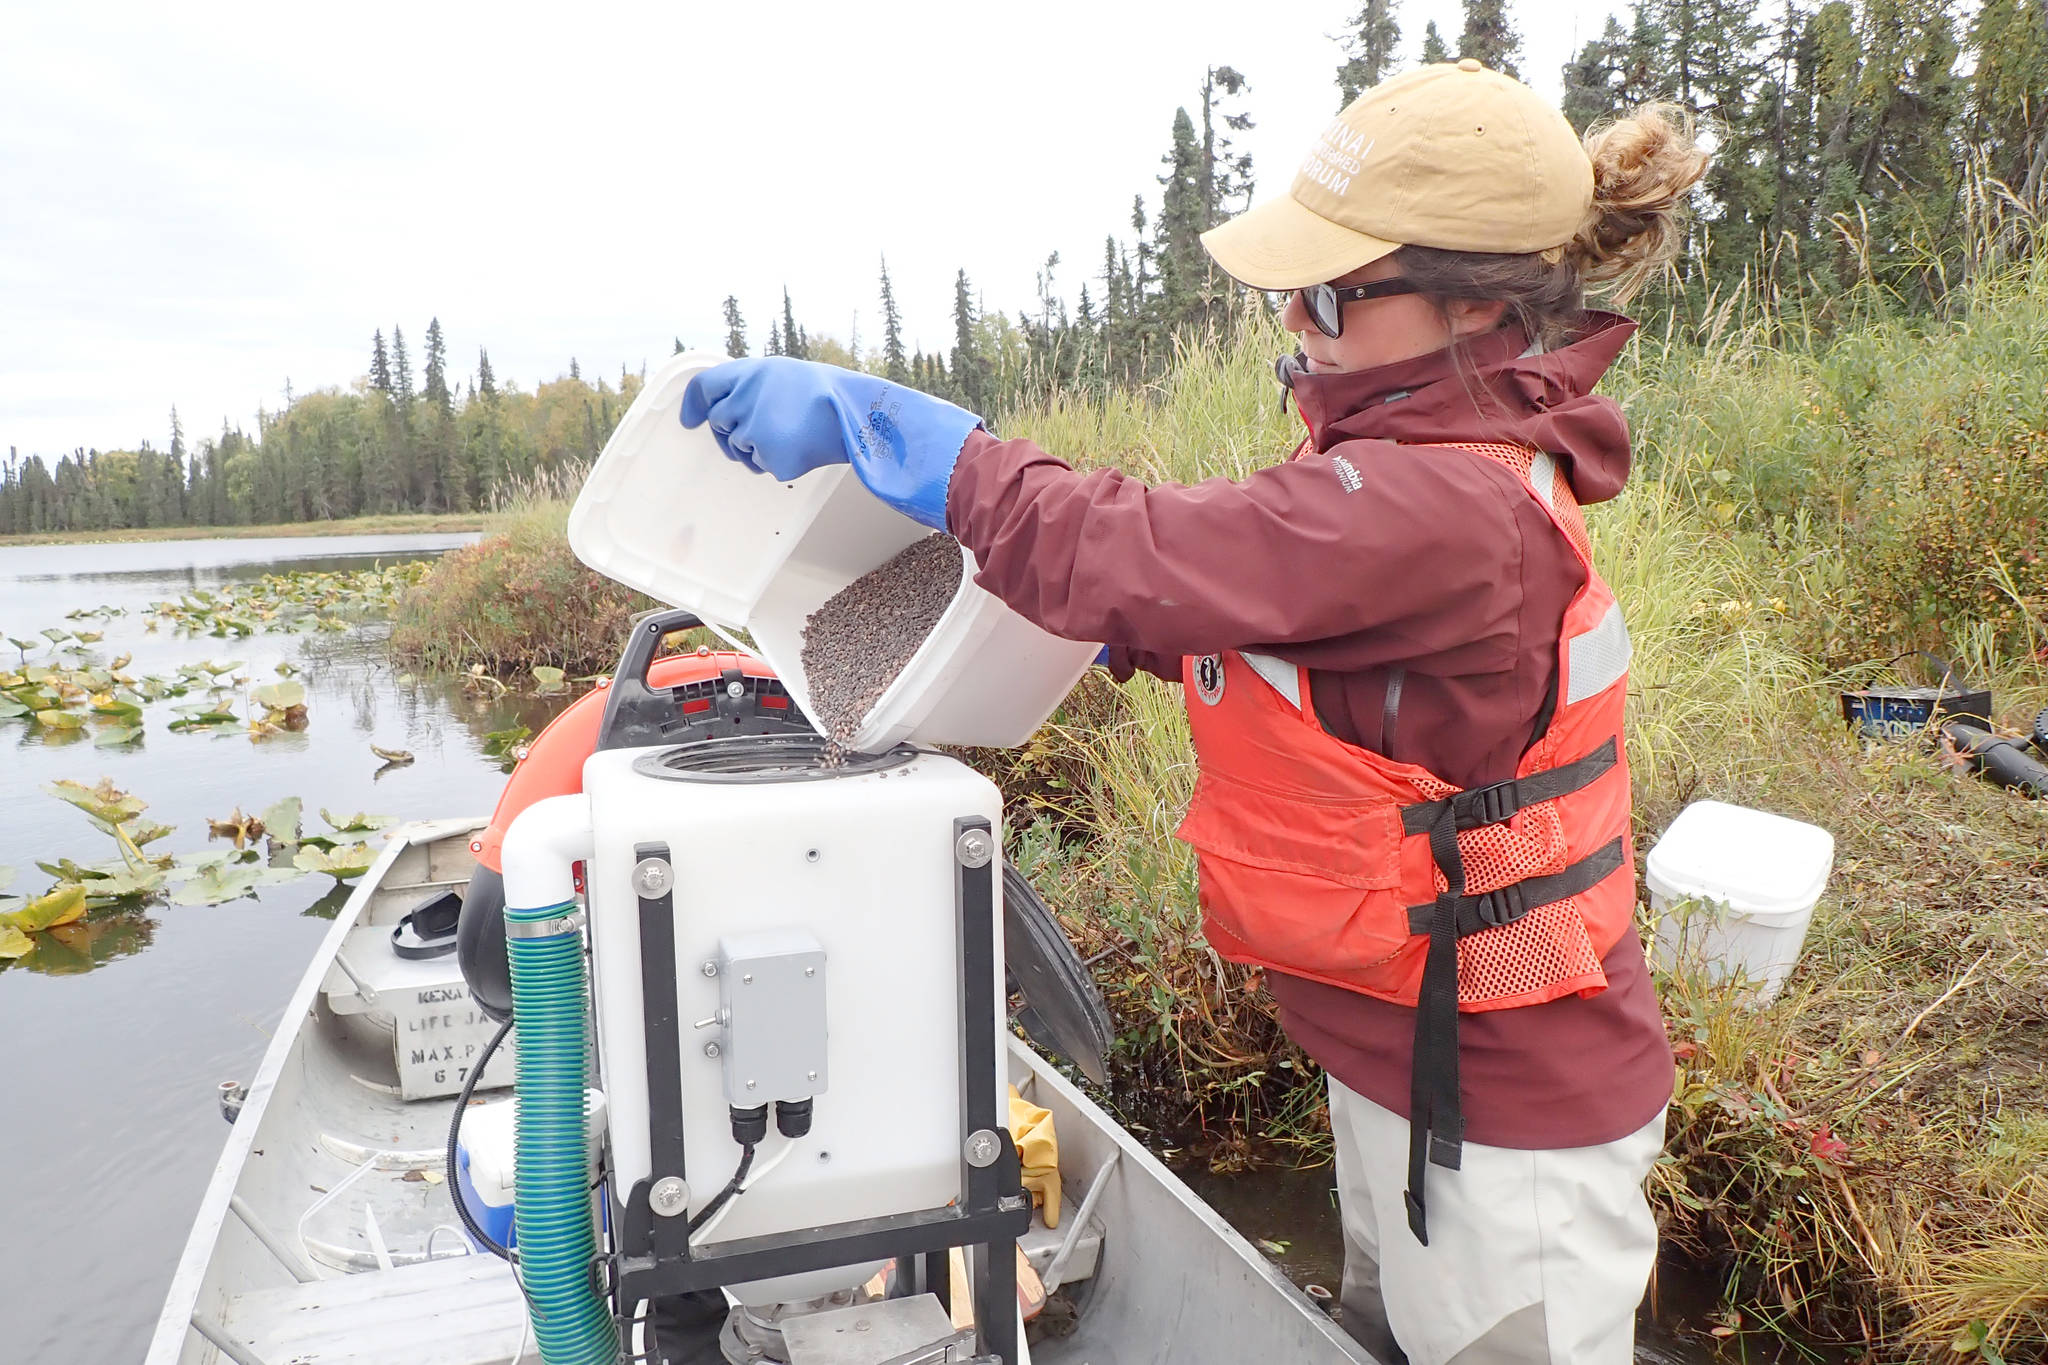 Maura Schumacher, invasive species specialist with the Kenai Watershed Forum, loads the hopper with fluridone pellets that are applied via a gasoline-fired blower to Hilda-Seppu Lake. (Photo by Matt Bowser/Kenai National Wildlife Refuge)